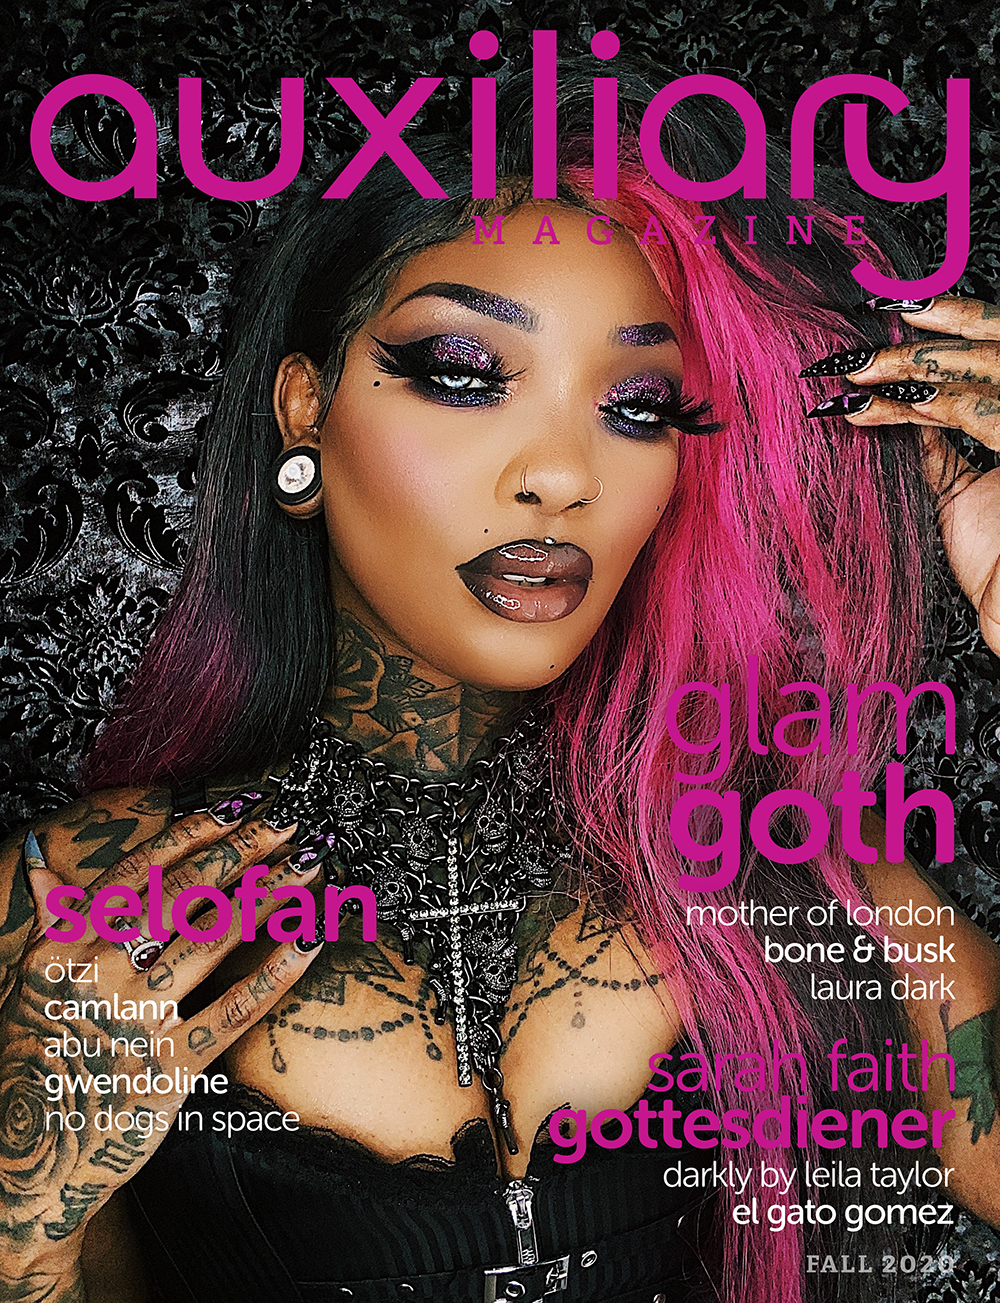 Auxiliary Magazine Fall 2020 Issue